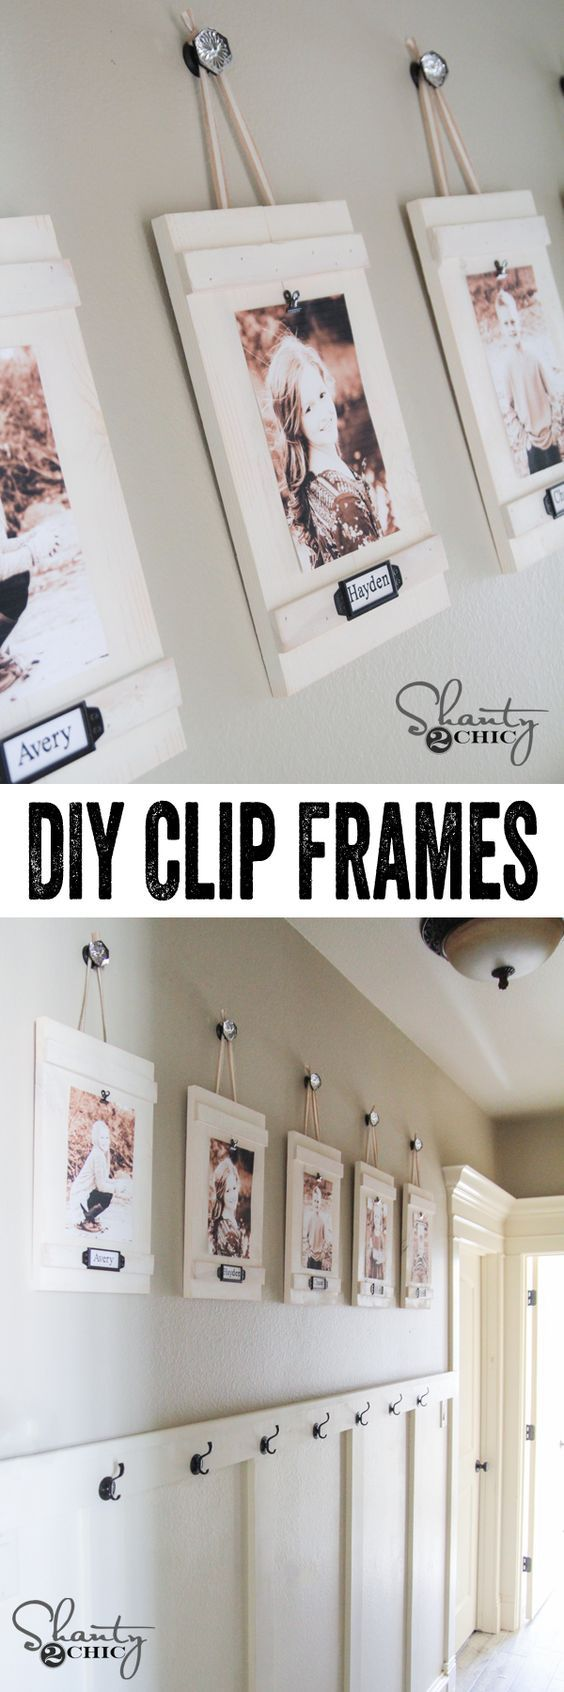 Make your own diy photo frames for your kid's photos. Such a cute way to decorate the house with frames and photos!